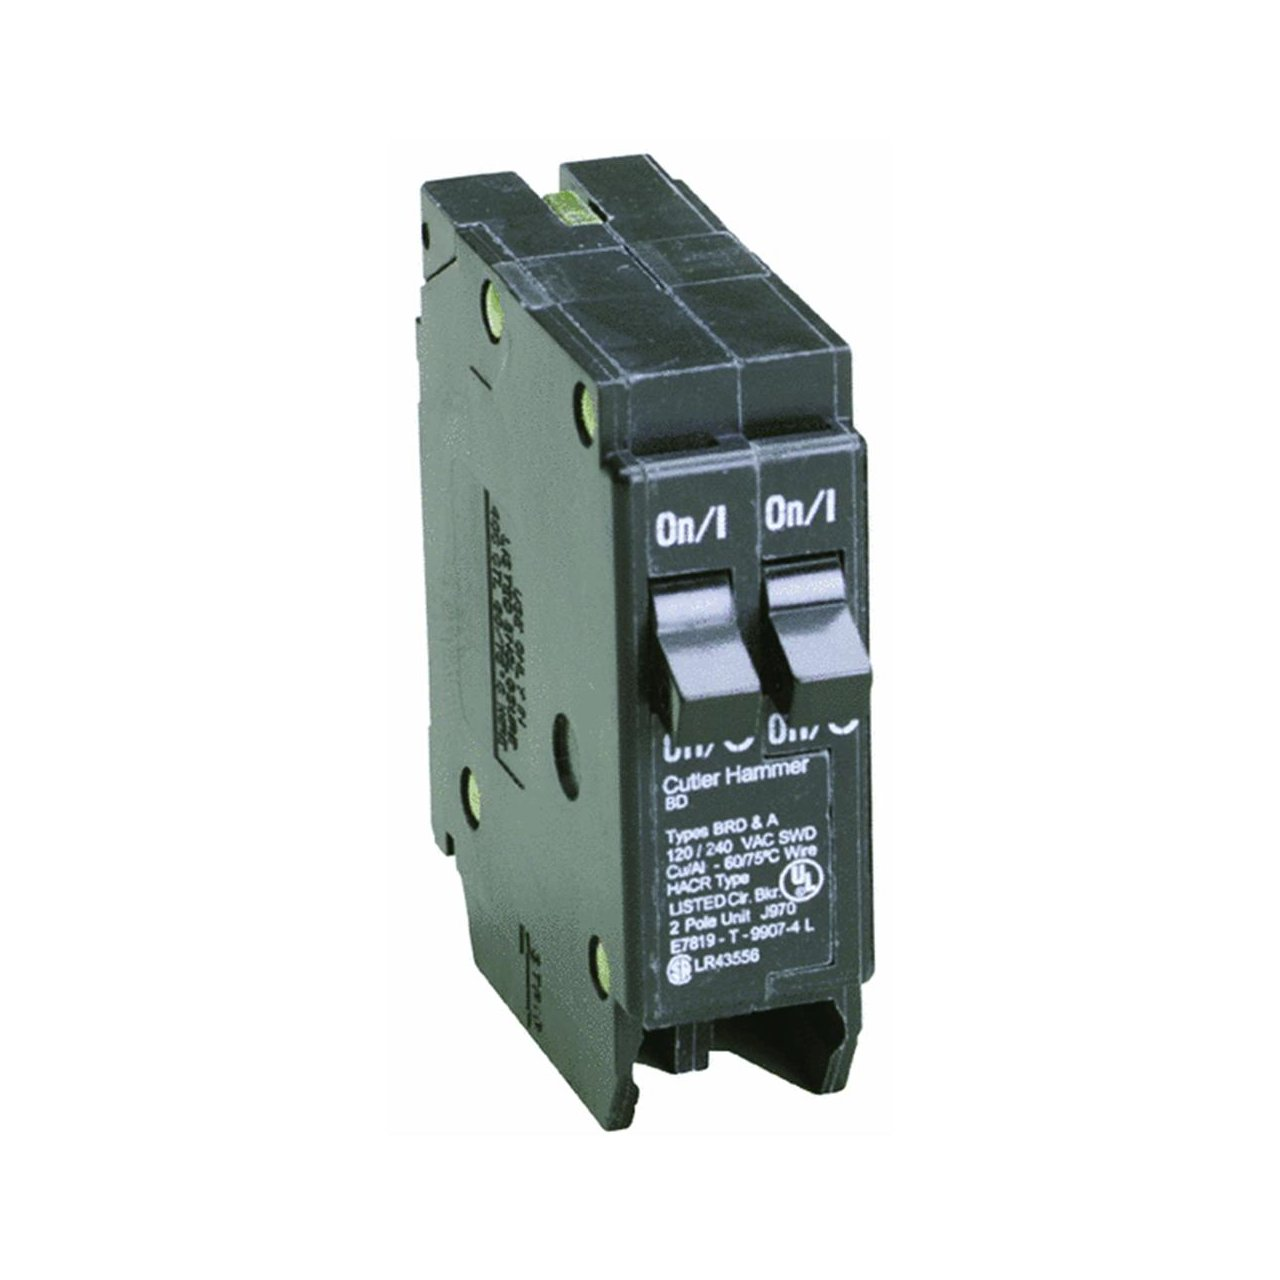 Eaton Corporation Bd1515 Single Pole Tandem Circuit Breaker 120v 2 Challenger Home Fuse Box 15 Amp Magnetic Breakers